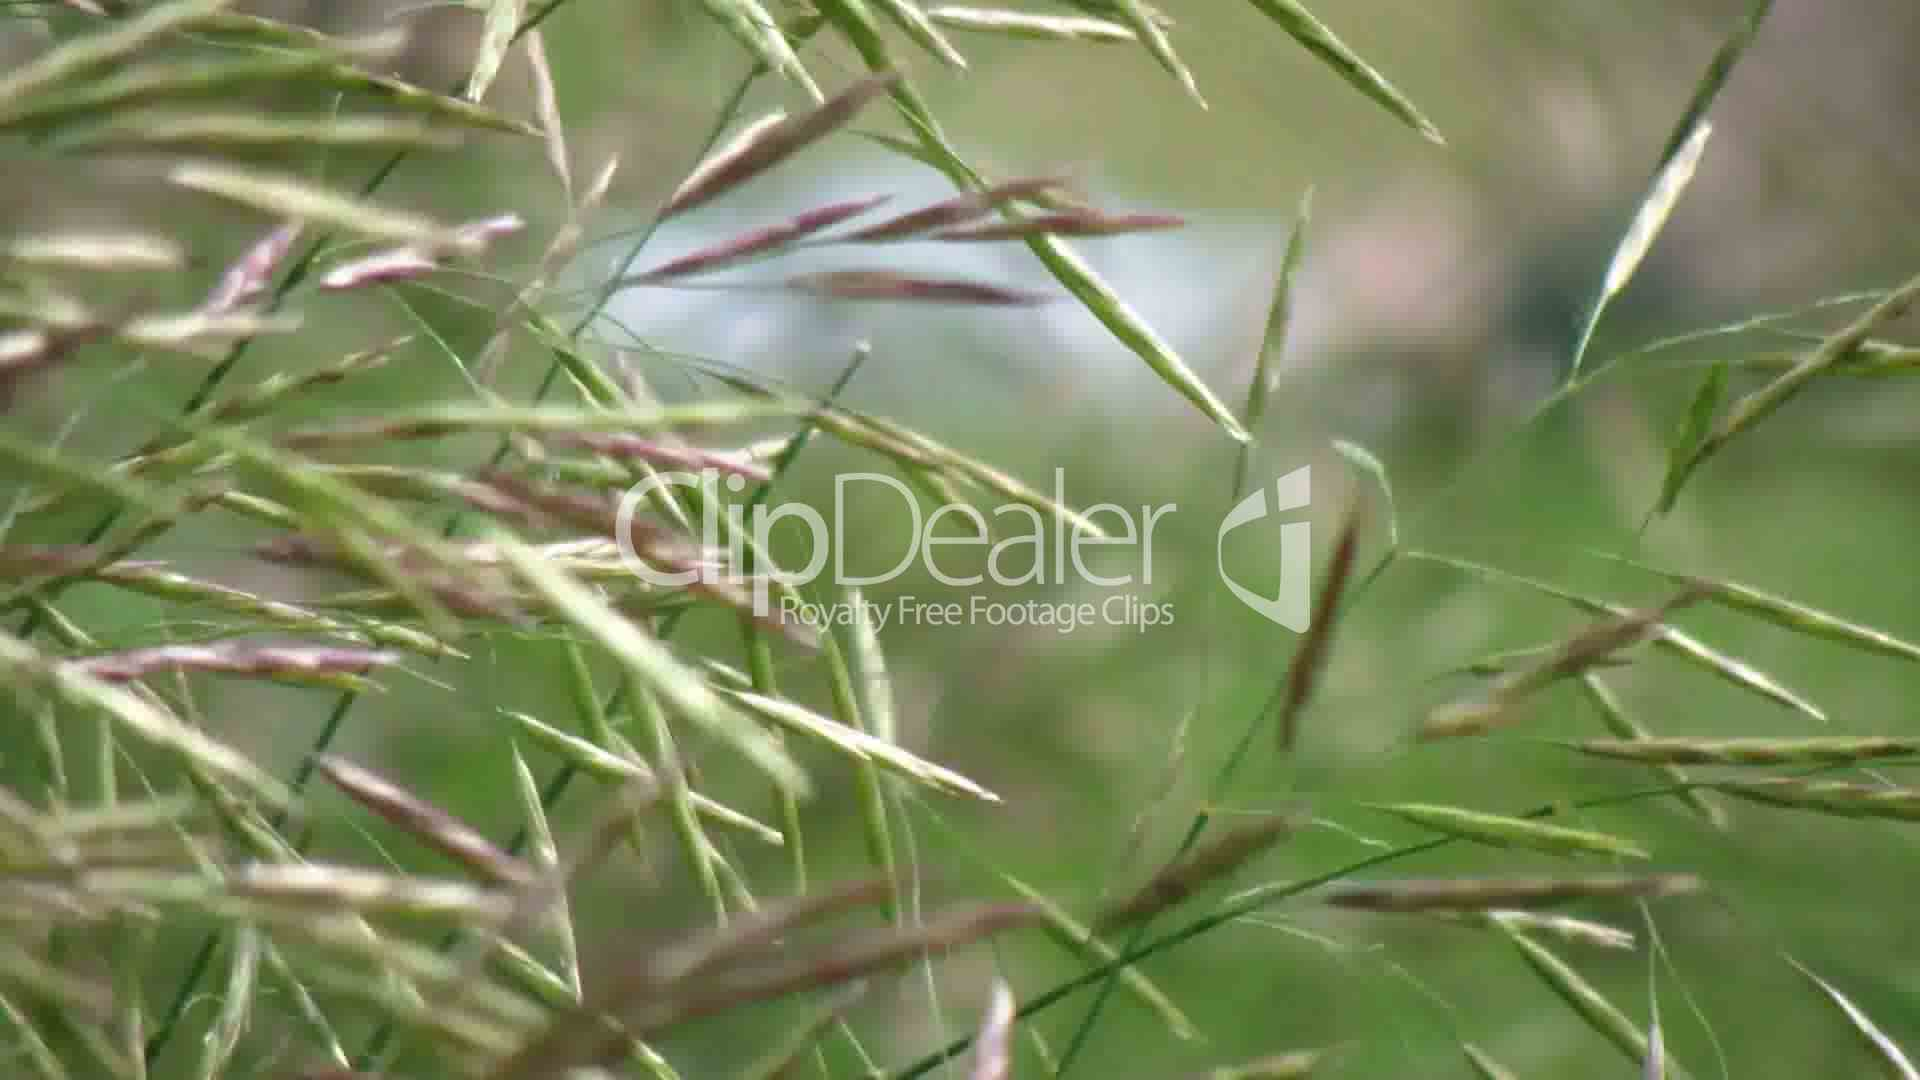 Hd Christbaumschmuck Royalty Free Video And Stock Footage Blades Of Grass Hd Royalty Free Video And Stock Footage